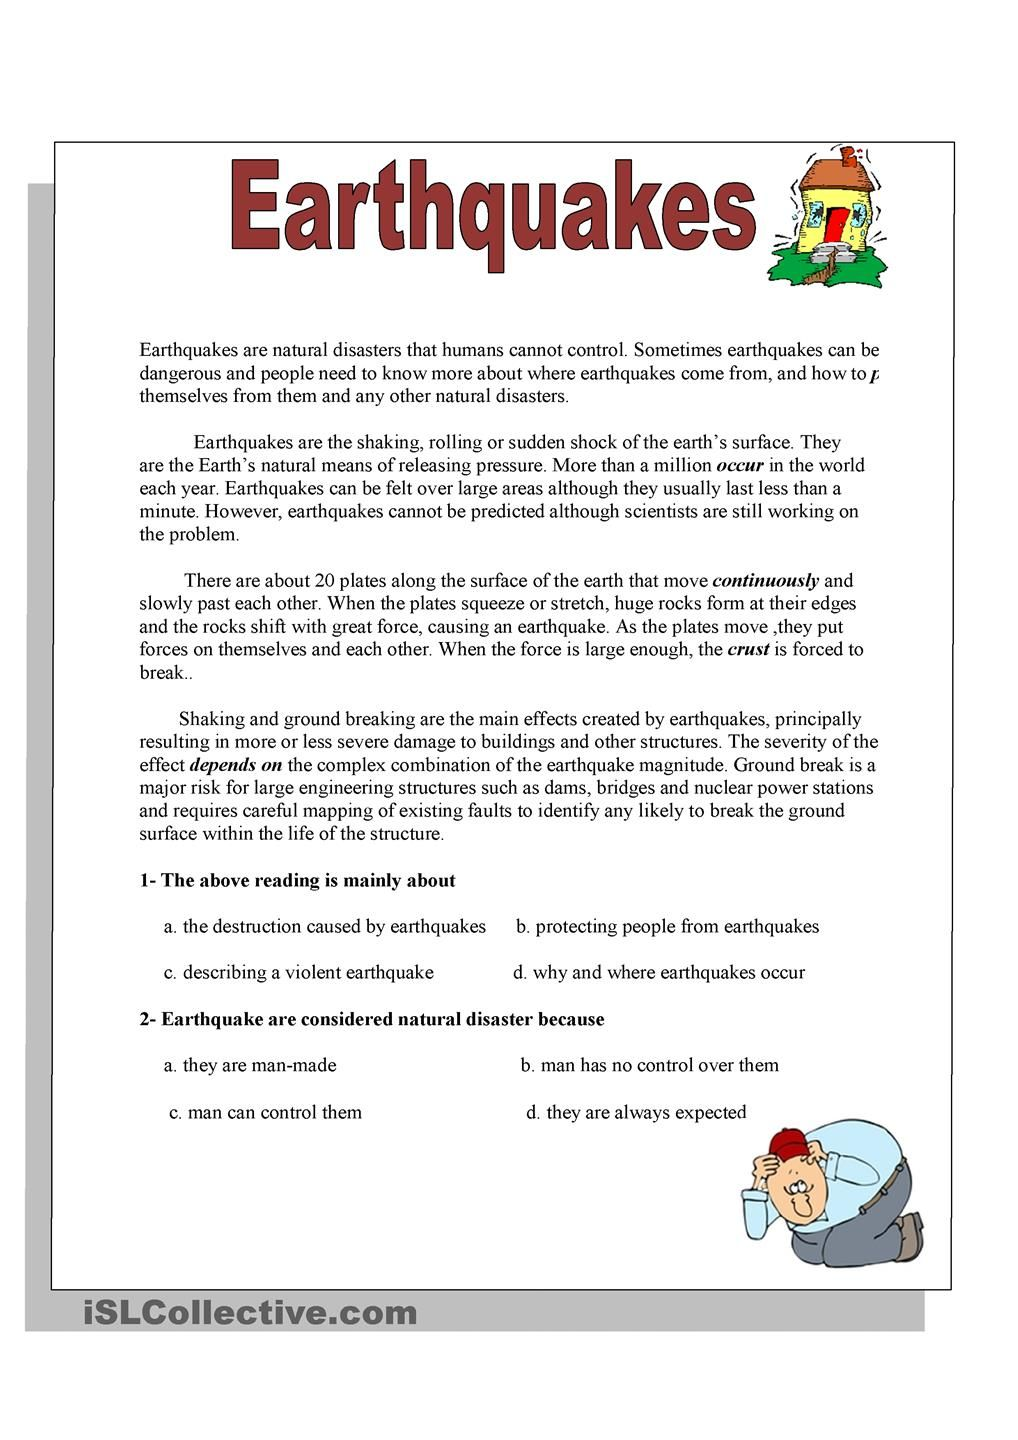 worksheet Earthquake Worksheet Ks2 earthquakes school pinterest english language reading worksheet free esl printable worksheets made by teachers